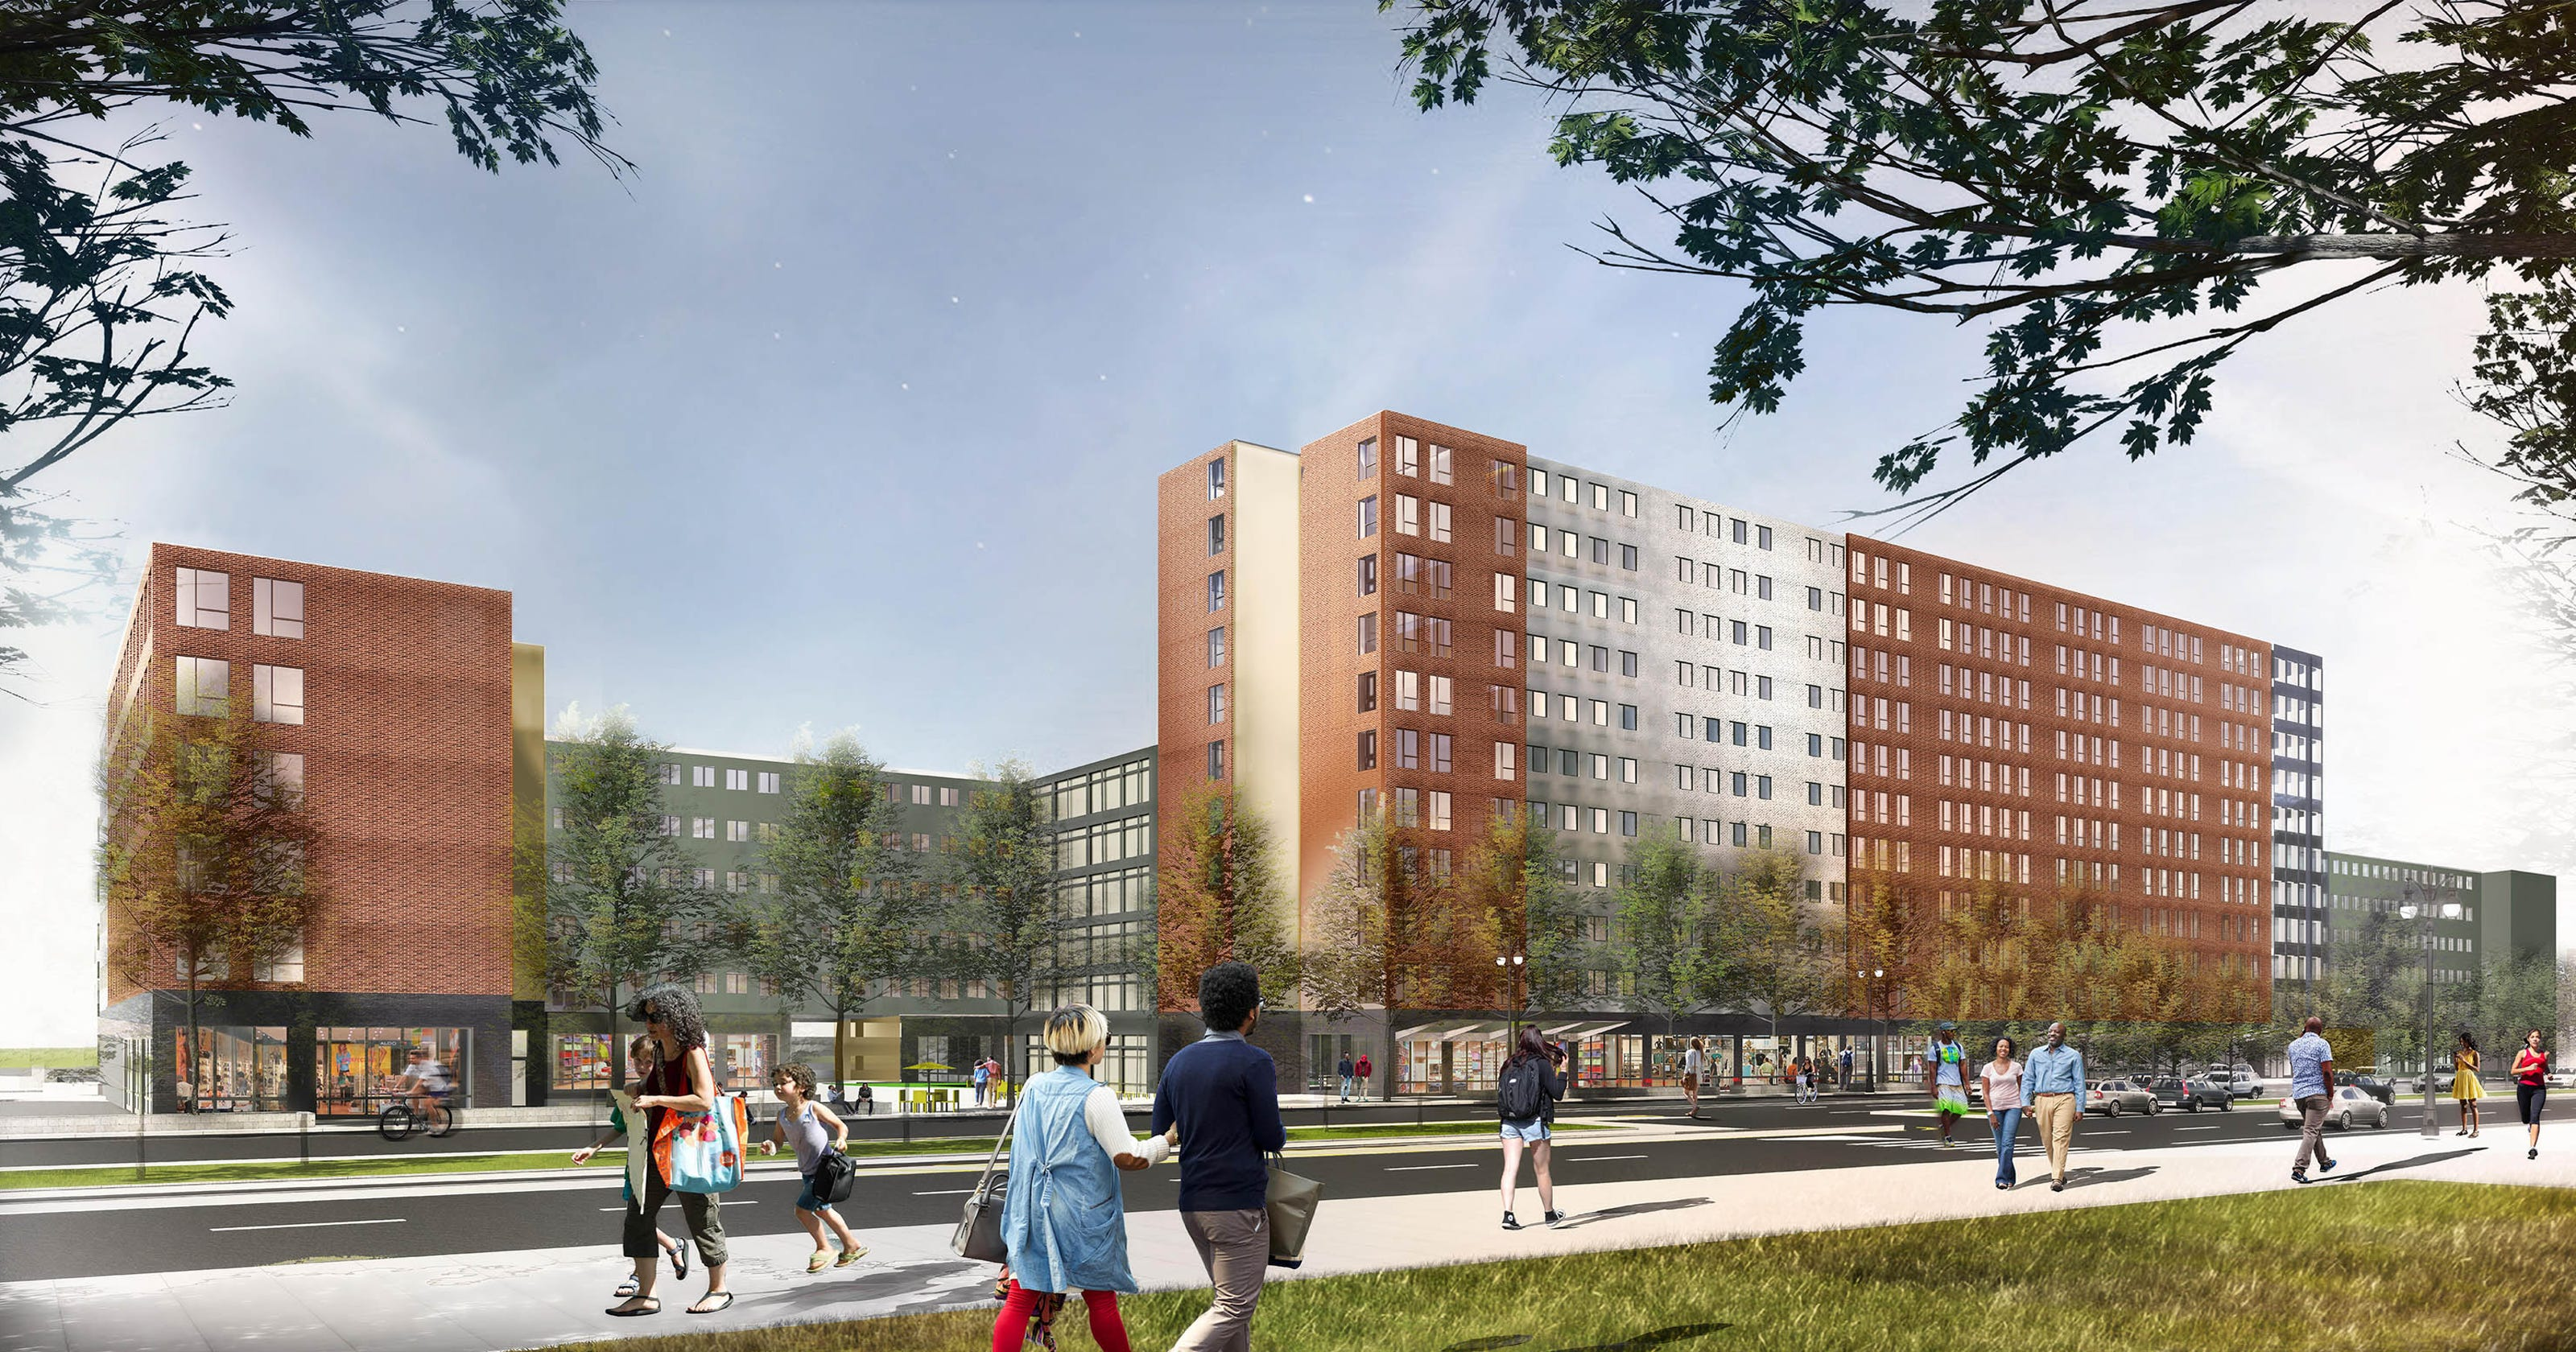 Wayne State Approves Private Partnership For Housing